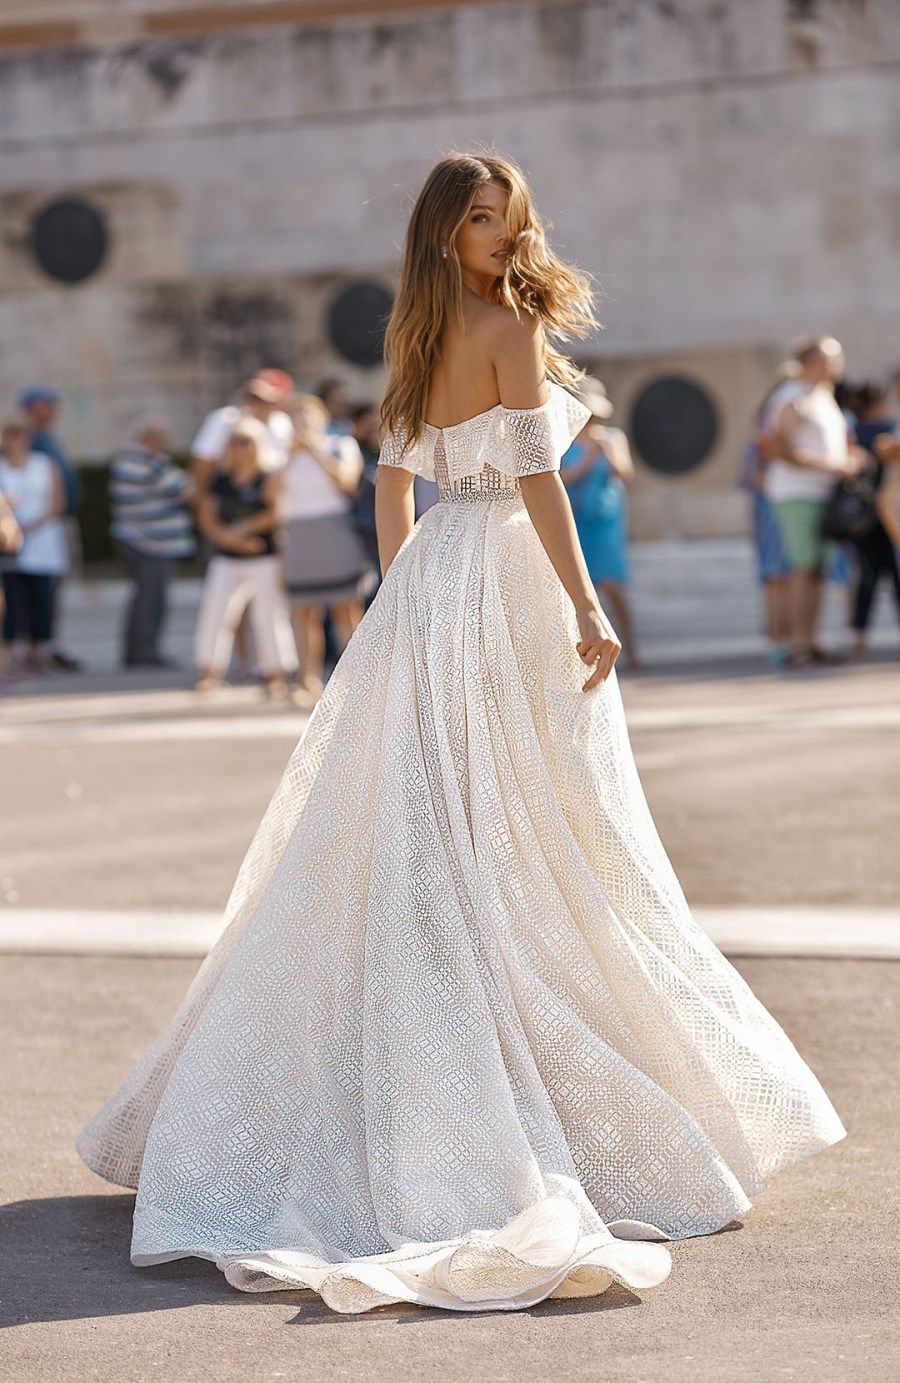 berta-wedding-dress-2019-1 (3)_2